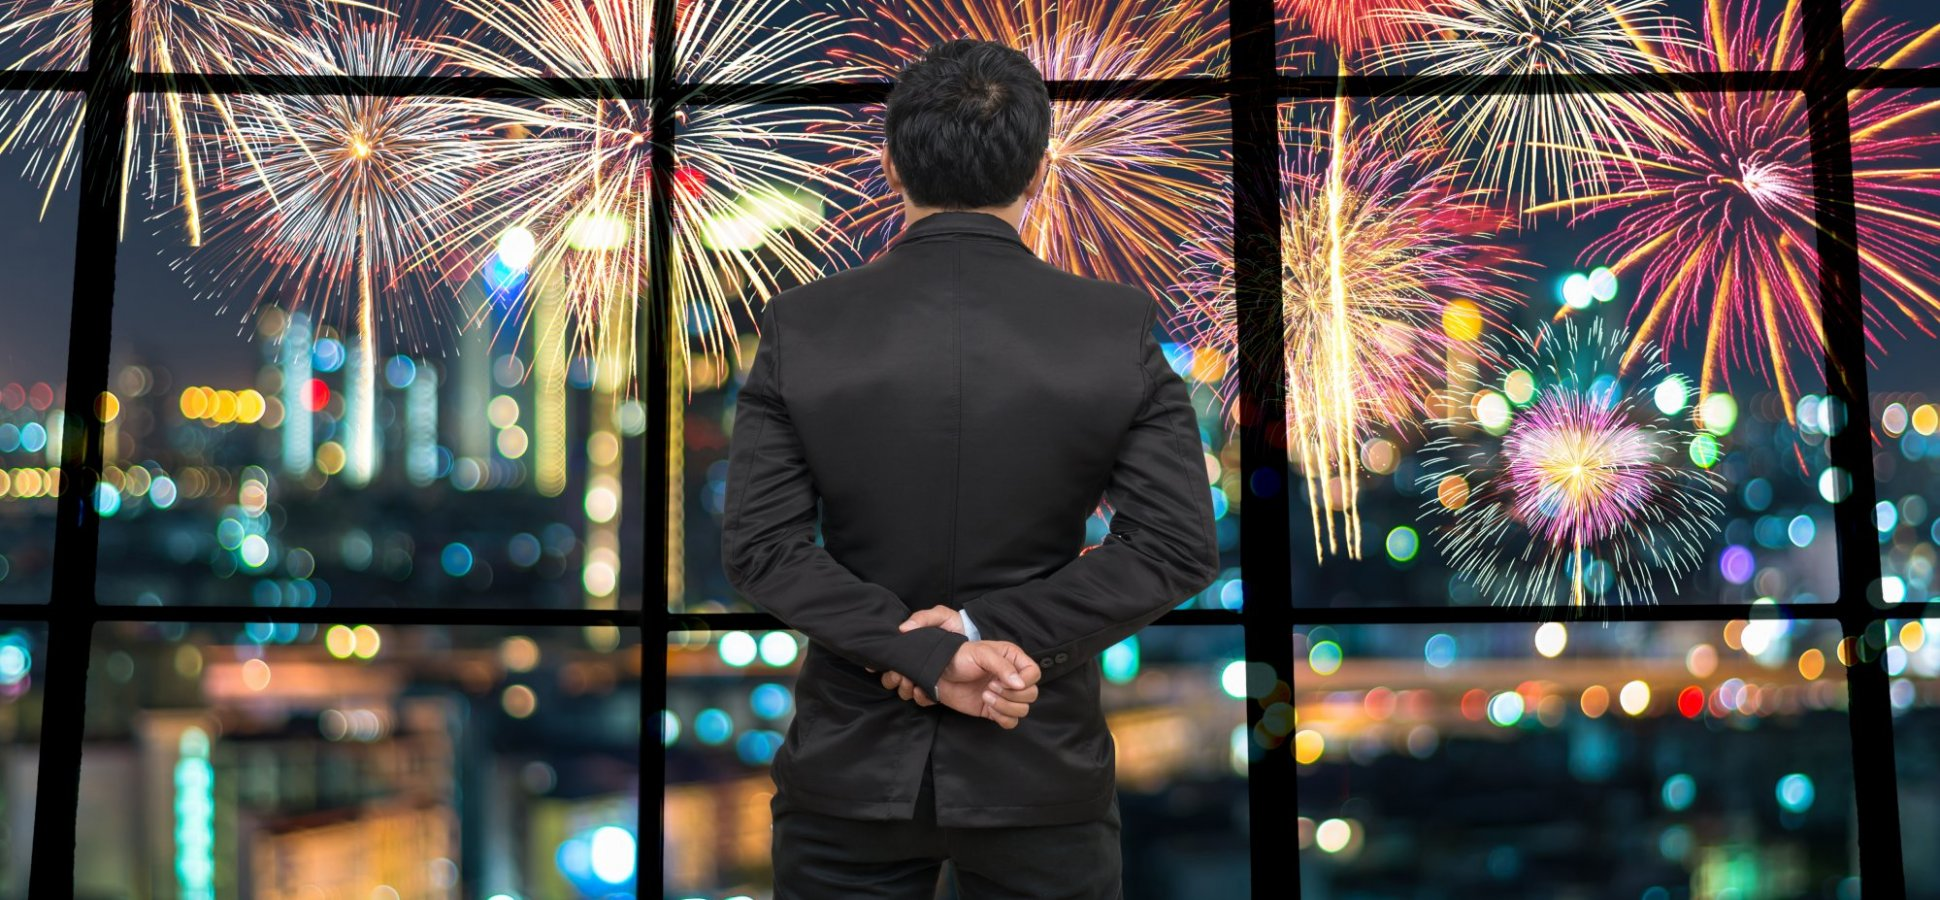 Don't Make Resolutions: Use These 5 Skills to Become a Great Leader in 2018